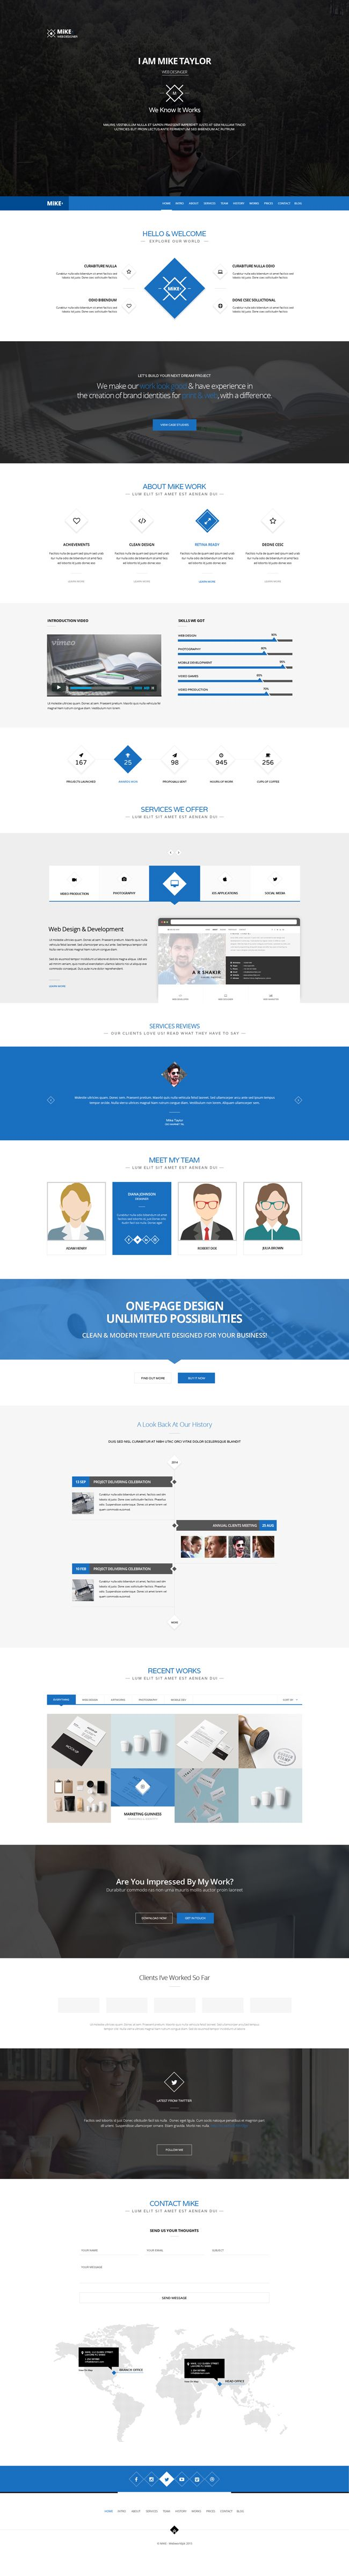 Free Download : Clean One Page Website Template (PSD)